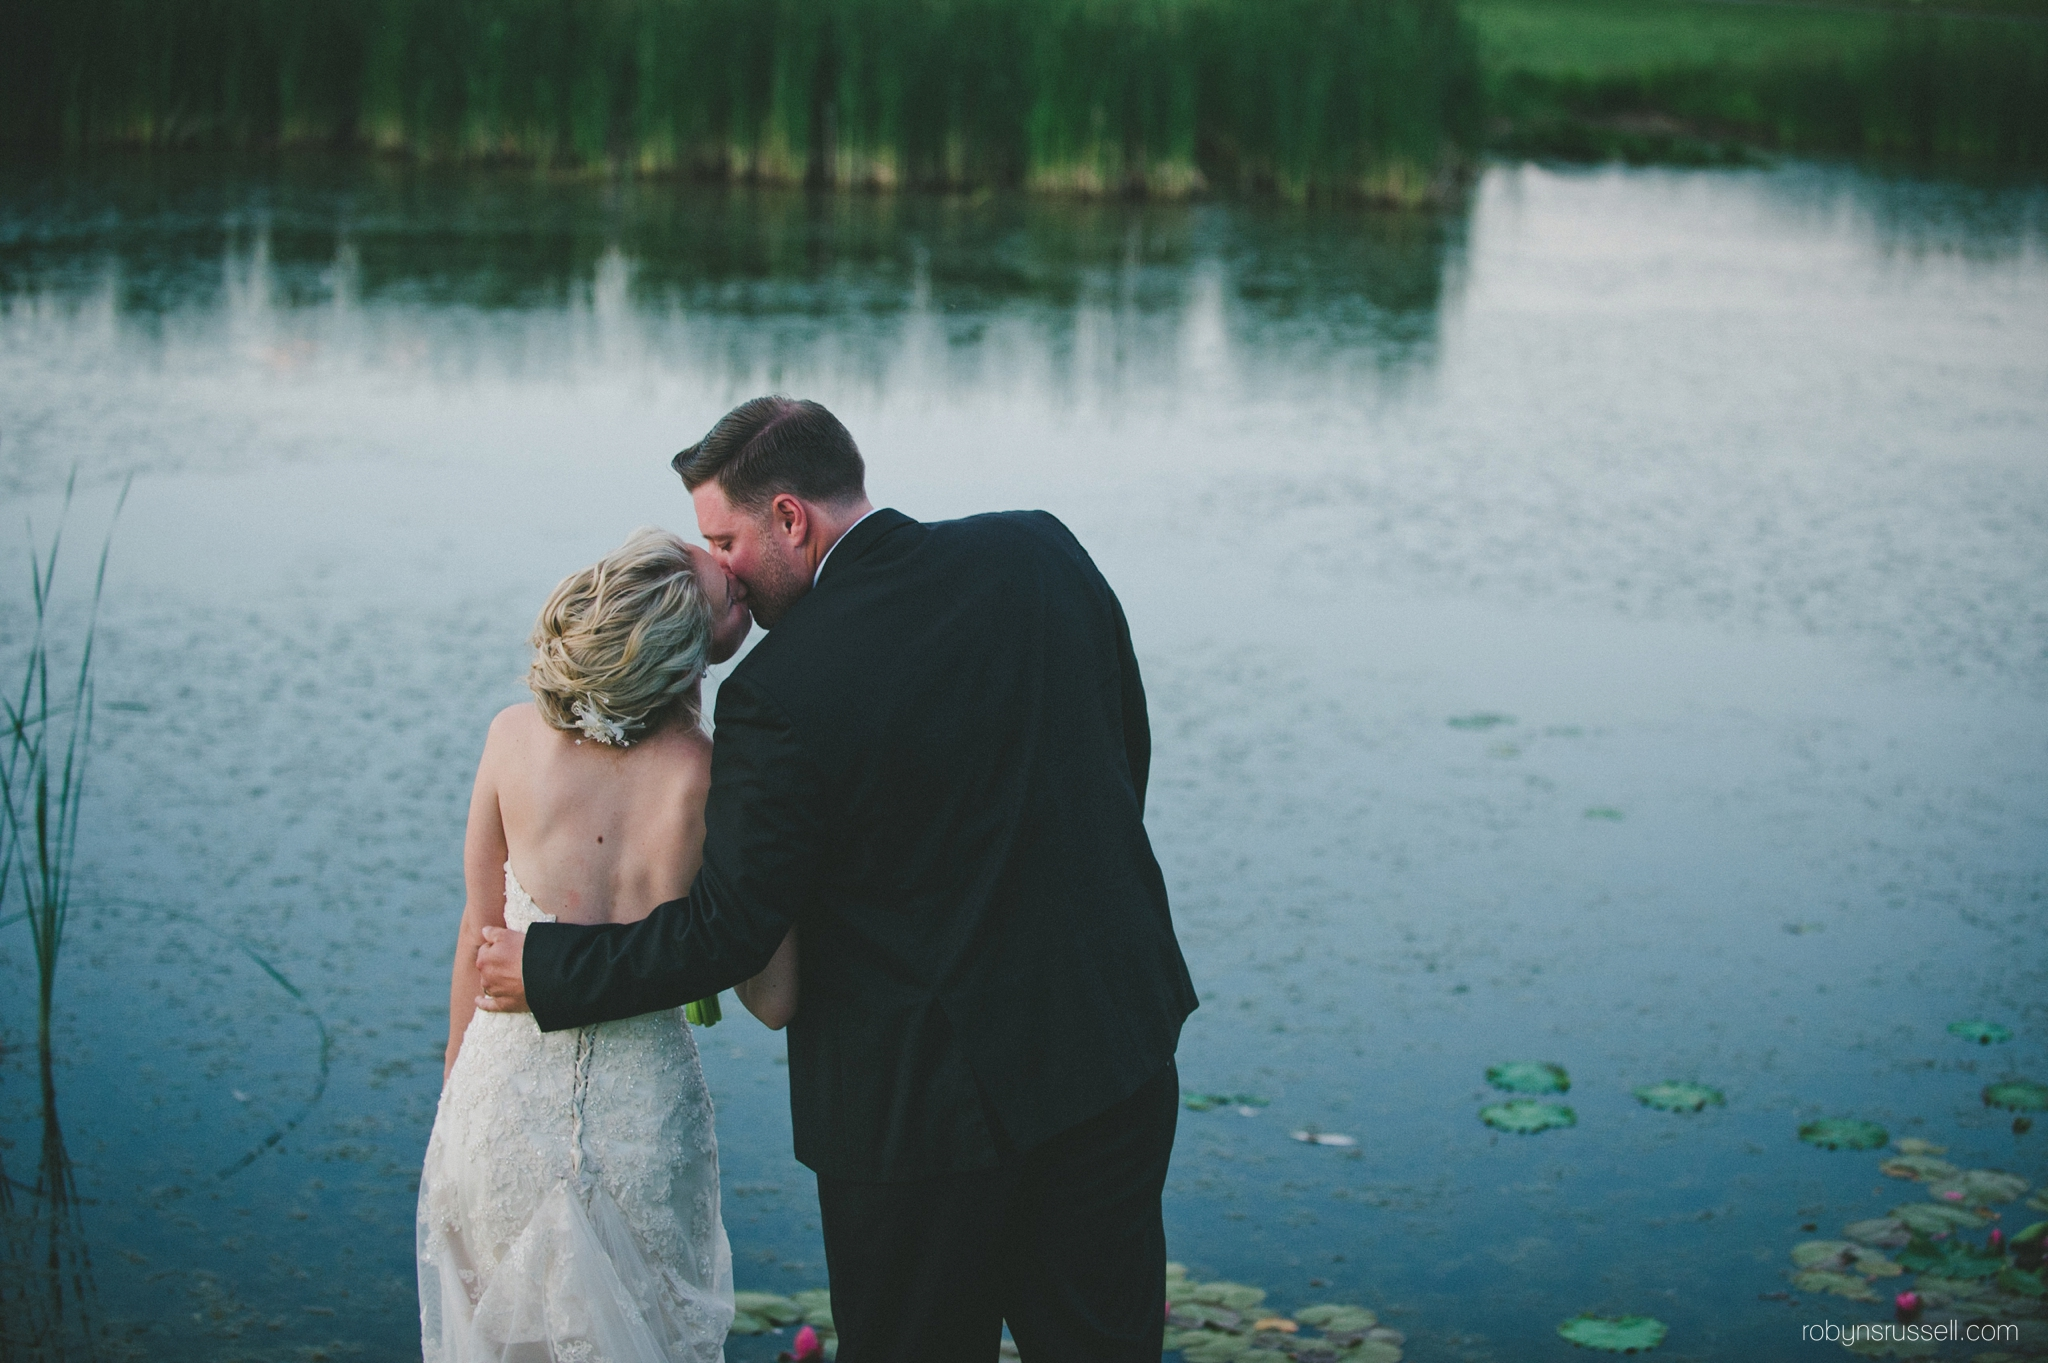 73-bride-and-groom-wedding-pipers-heath-robynsrussell-photography.jpg